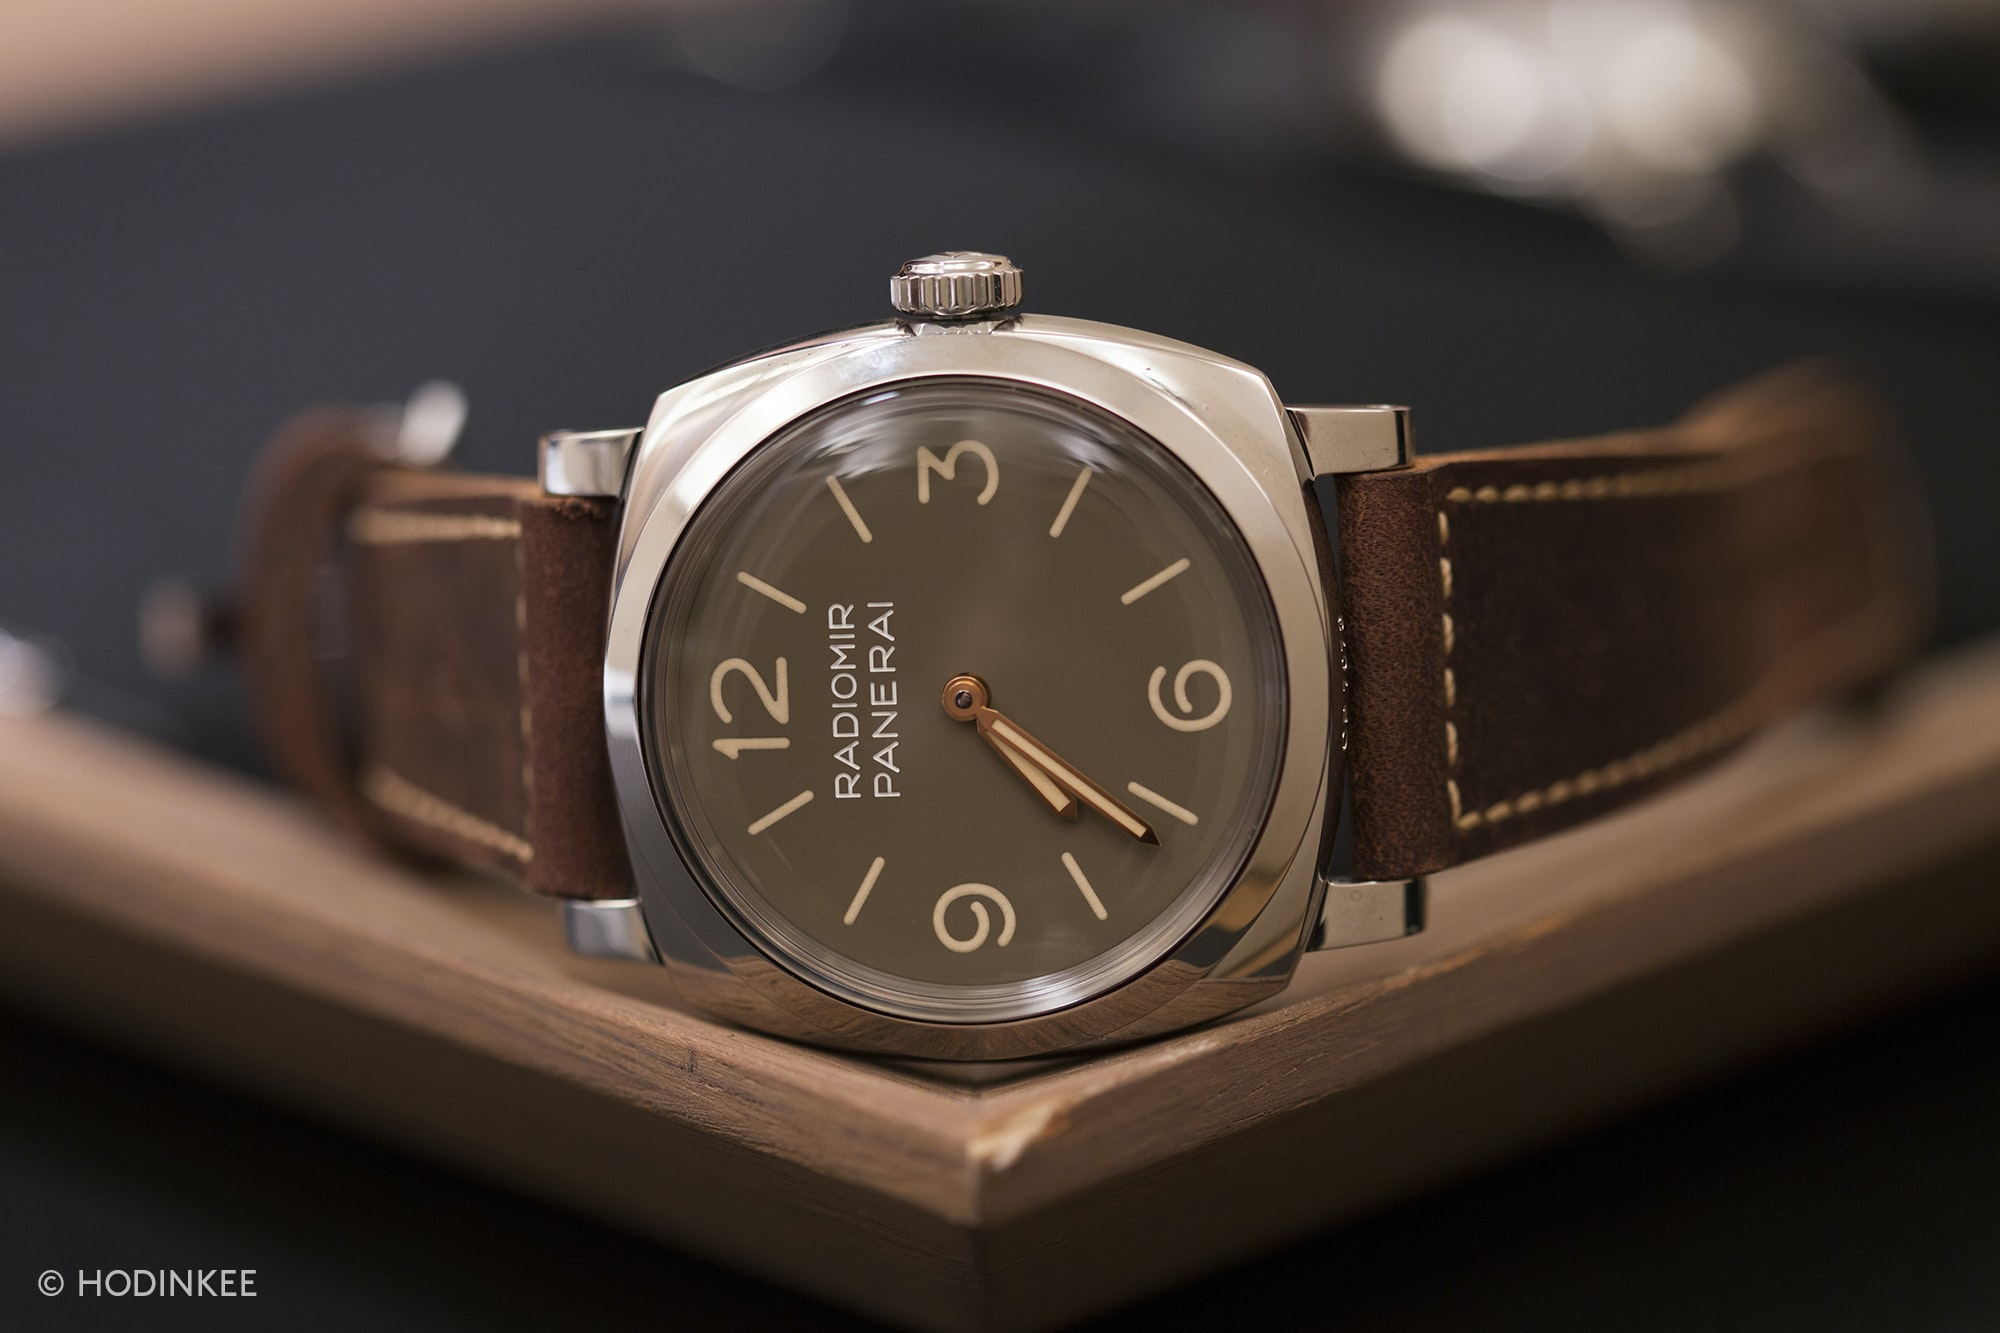 Hands-On: The Panerai Radiomir 1940 3 Days PAM 662 And Luminor 1950 PAM 663 Hands-On: The Panerai Radiomir 1940 3 Days PAM 662 And Luminor 1950 PAM 663 Radiomir 1940 3 Days PAM 662 side